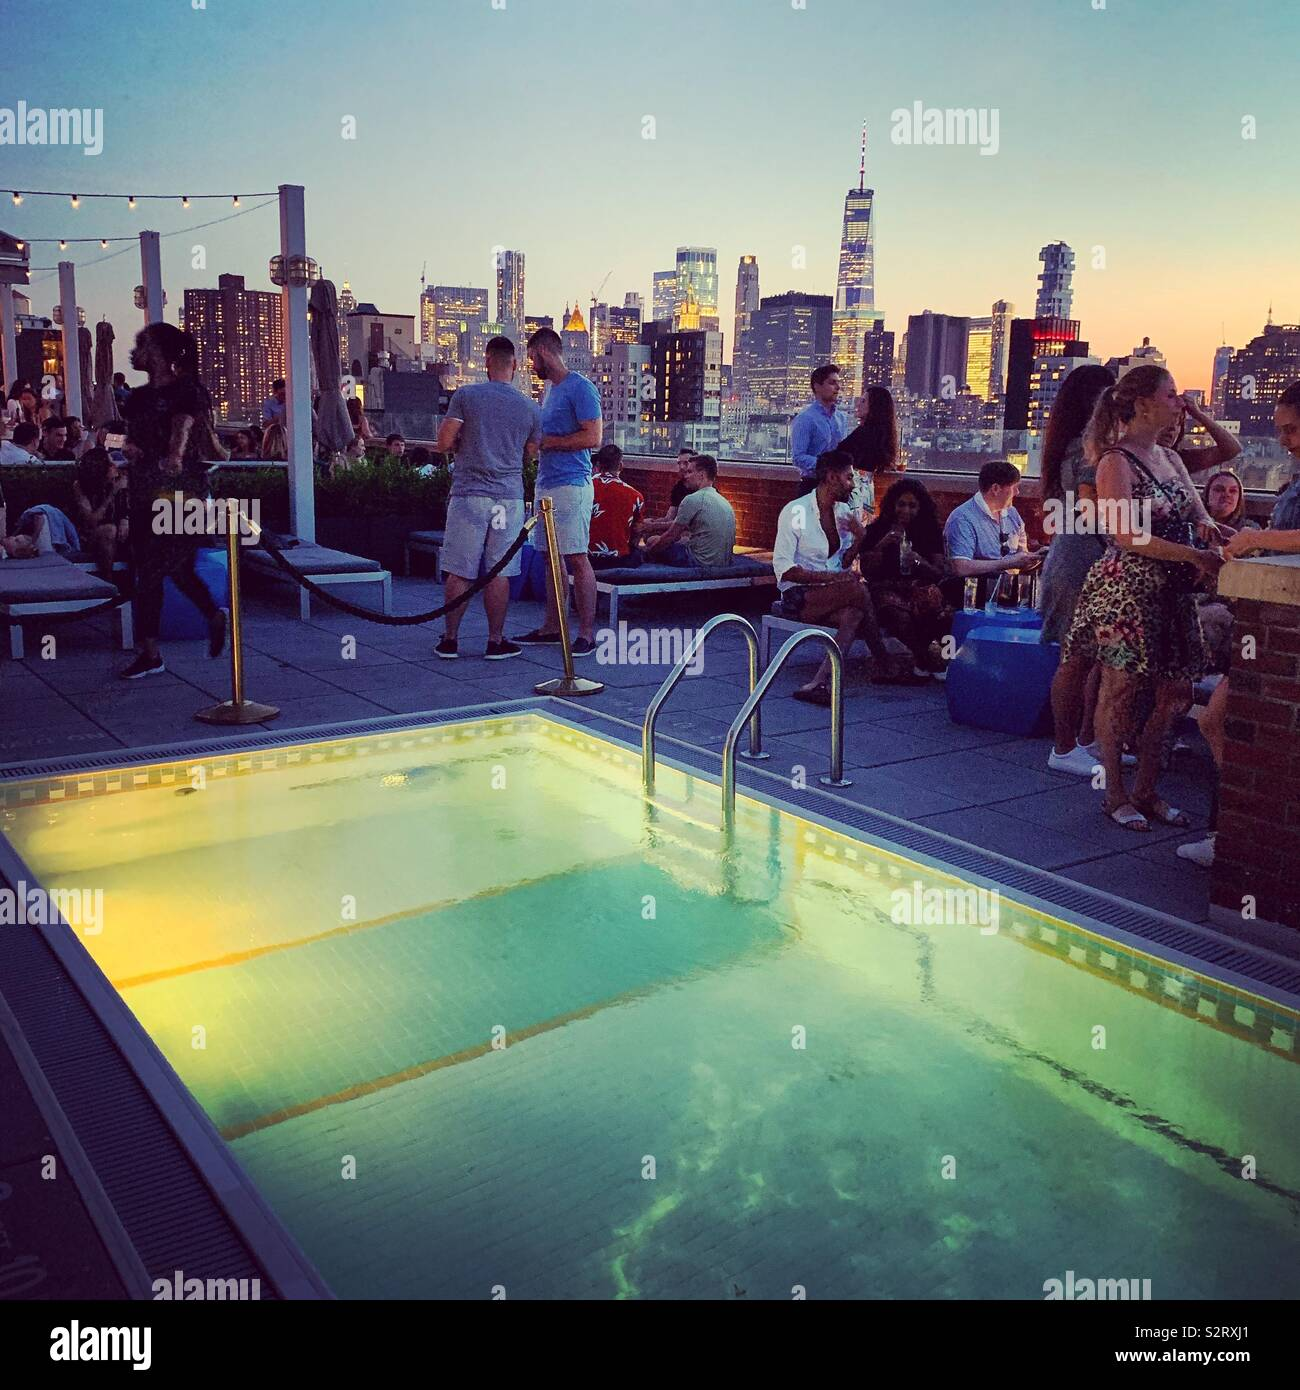 Patrons of the Mr. Purple bar socialize near the pool with the Lower Manhattan skyline in the background at the Hotel Indigo Lower East Side, New York City - Stock Image